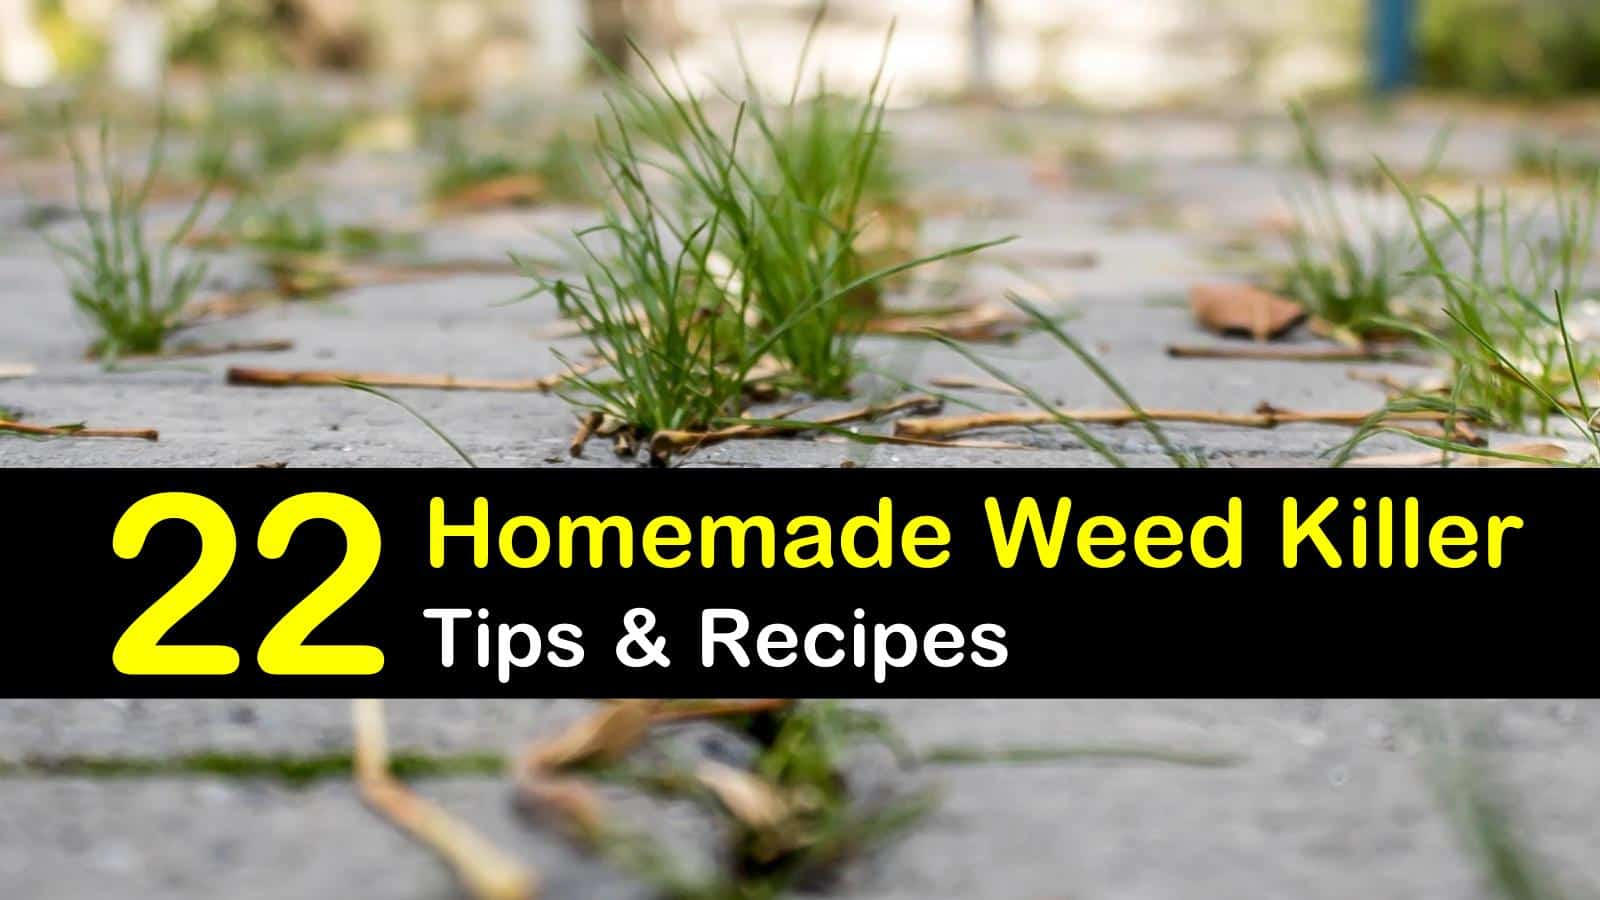 Homemade Weed Killer Recipes: 22 DIY Tips for Killing Weed